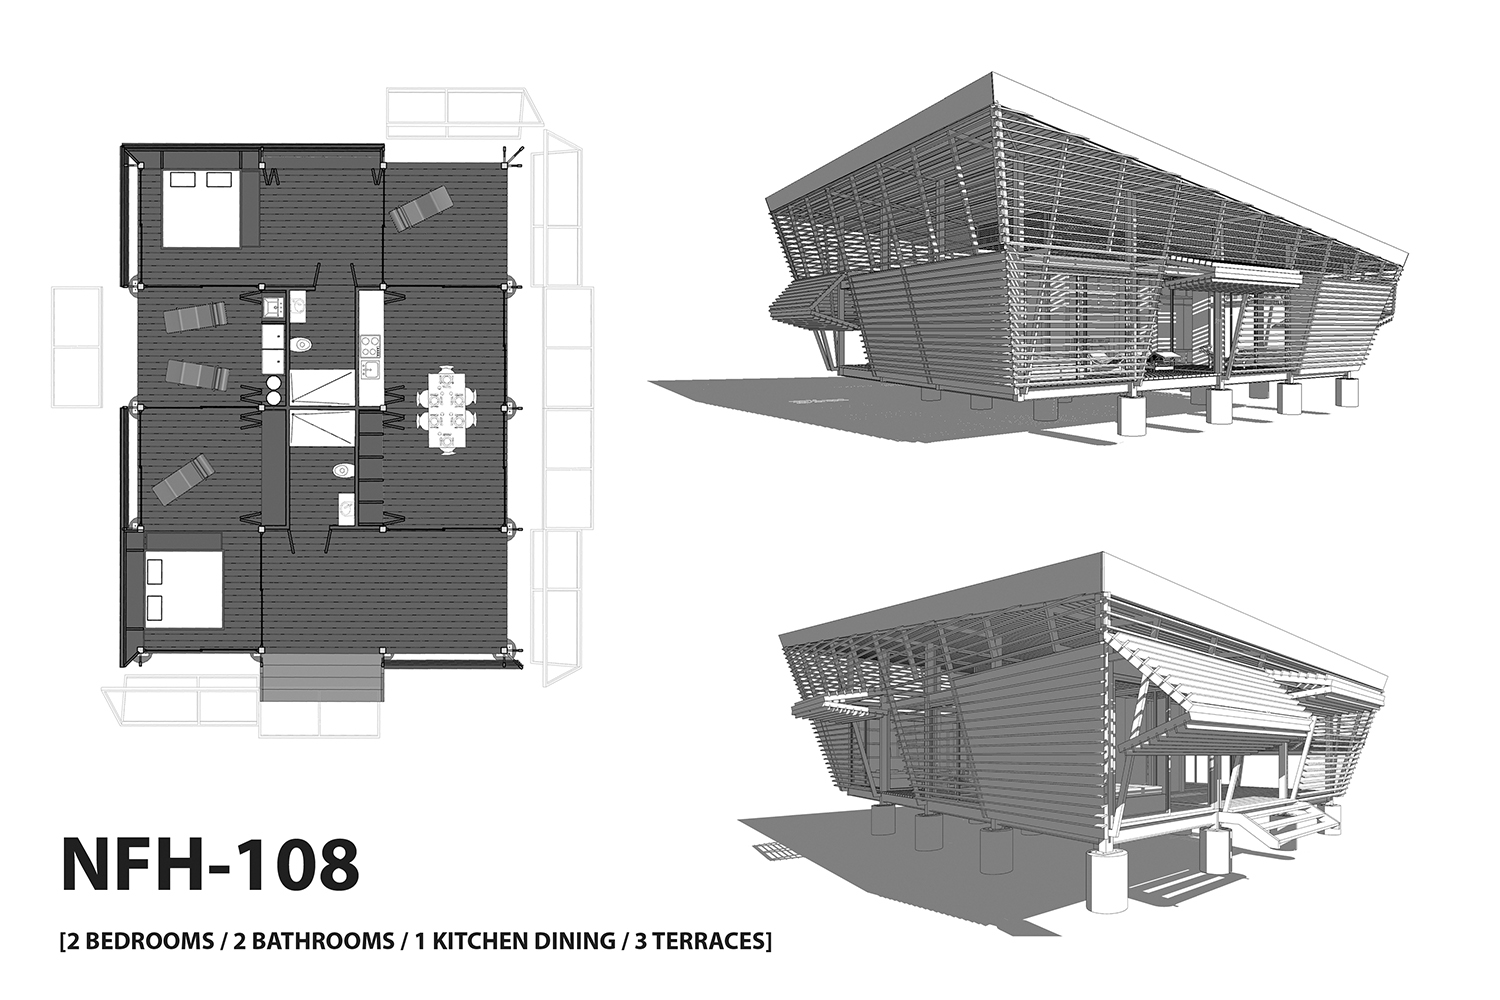 NFH-108 typology (2 bedrooms / 2 bathrooms / 1 kitchen / 3 terraces). A-01}